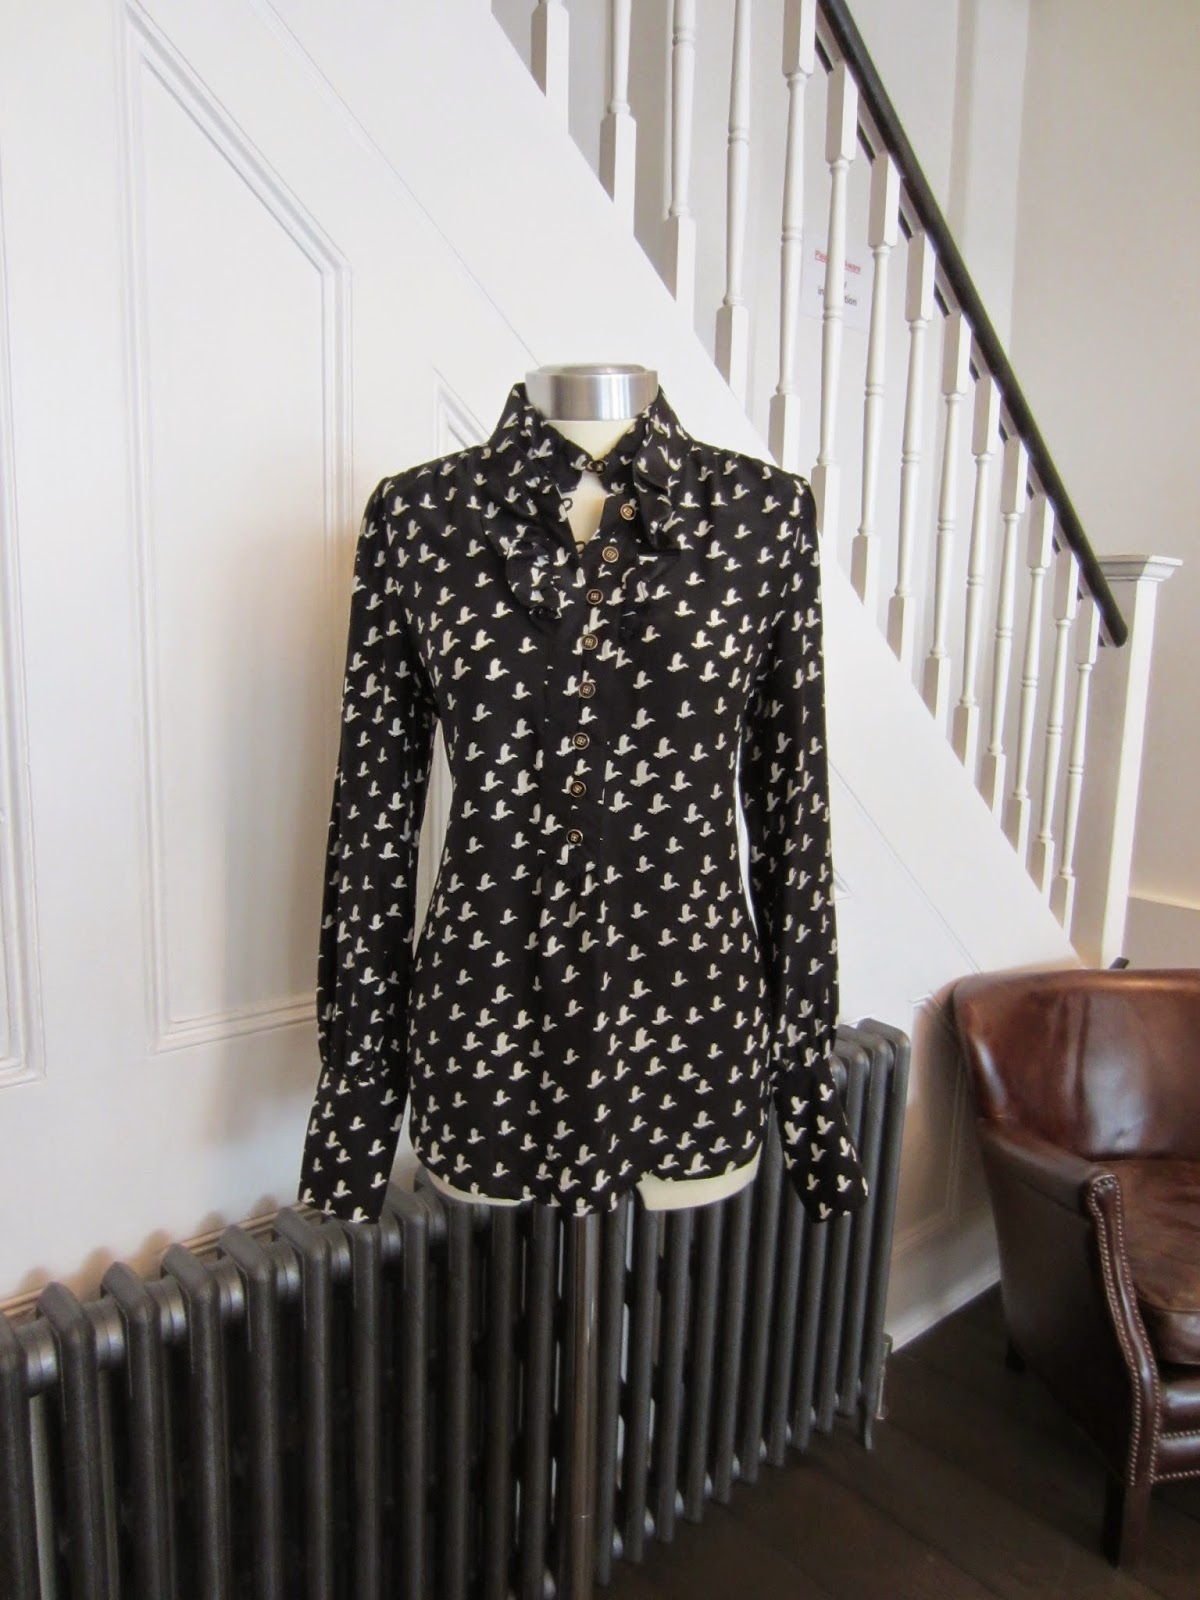 Juicy Couture Black Silk Blouse with White Bird Print